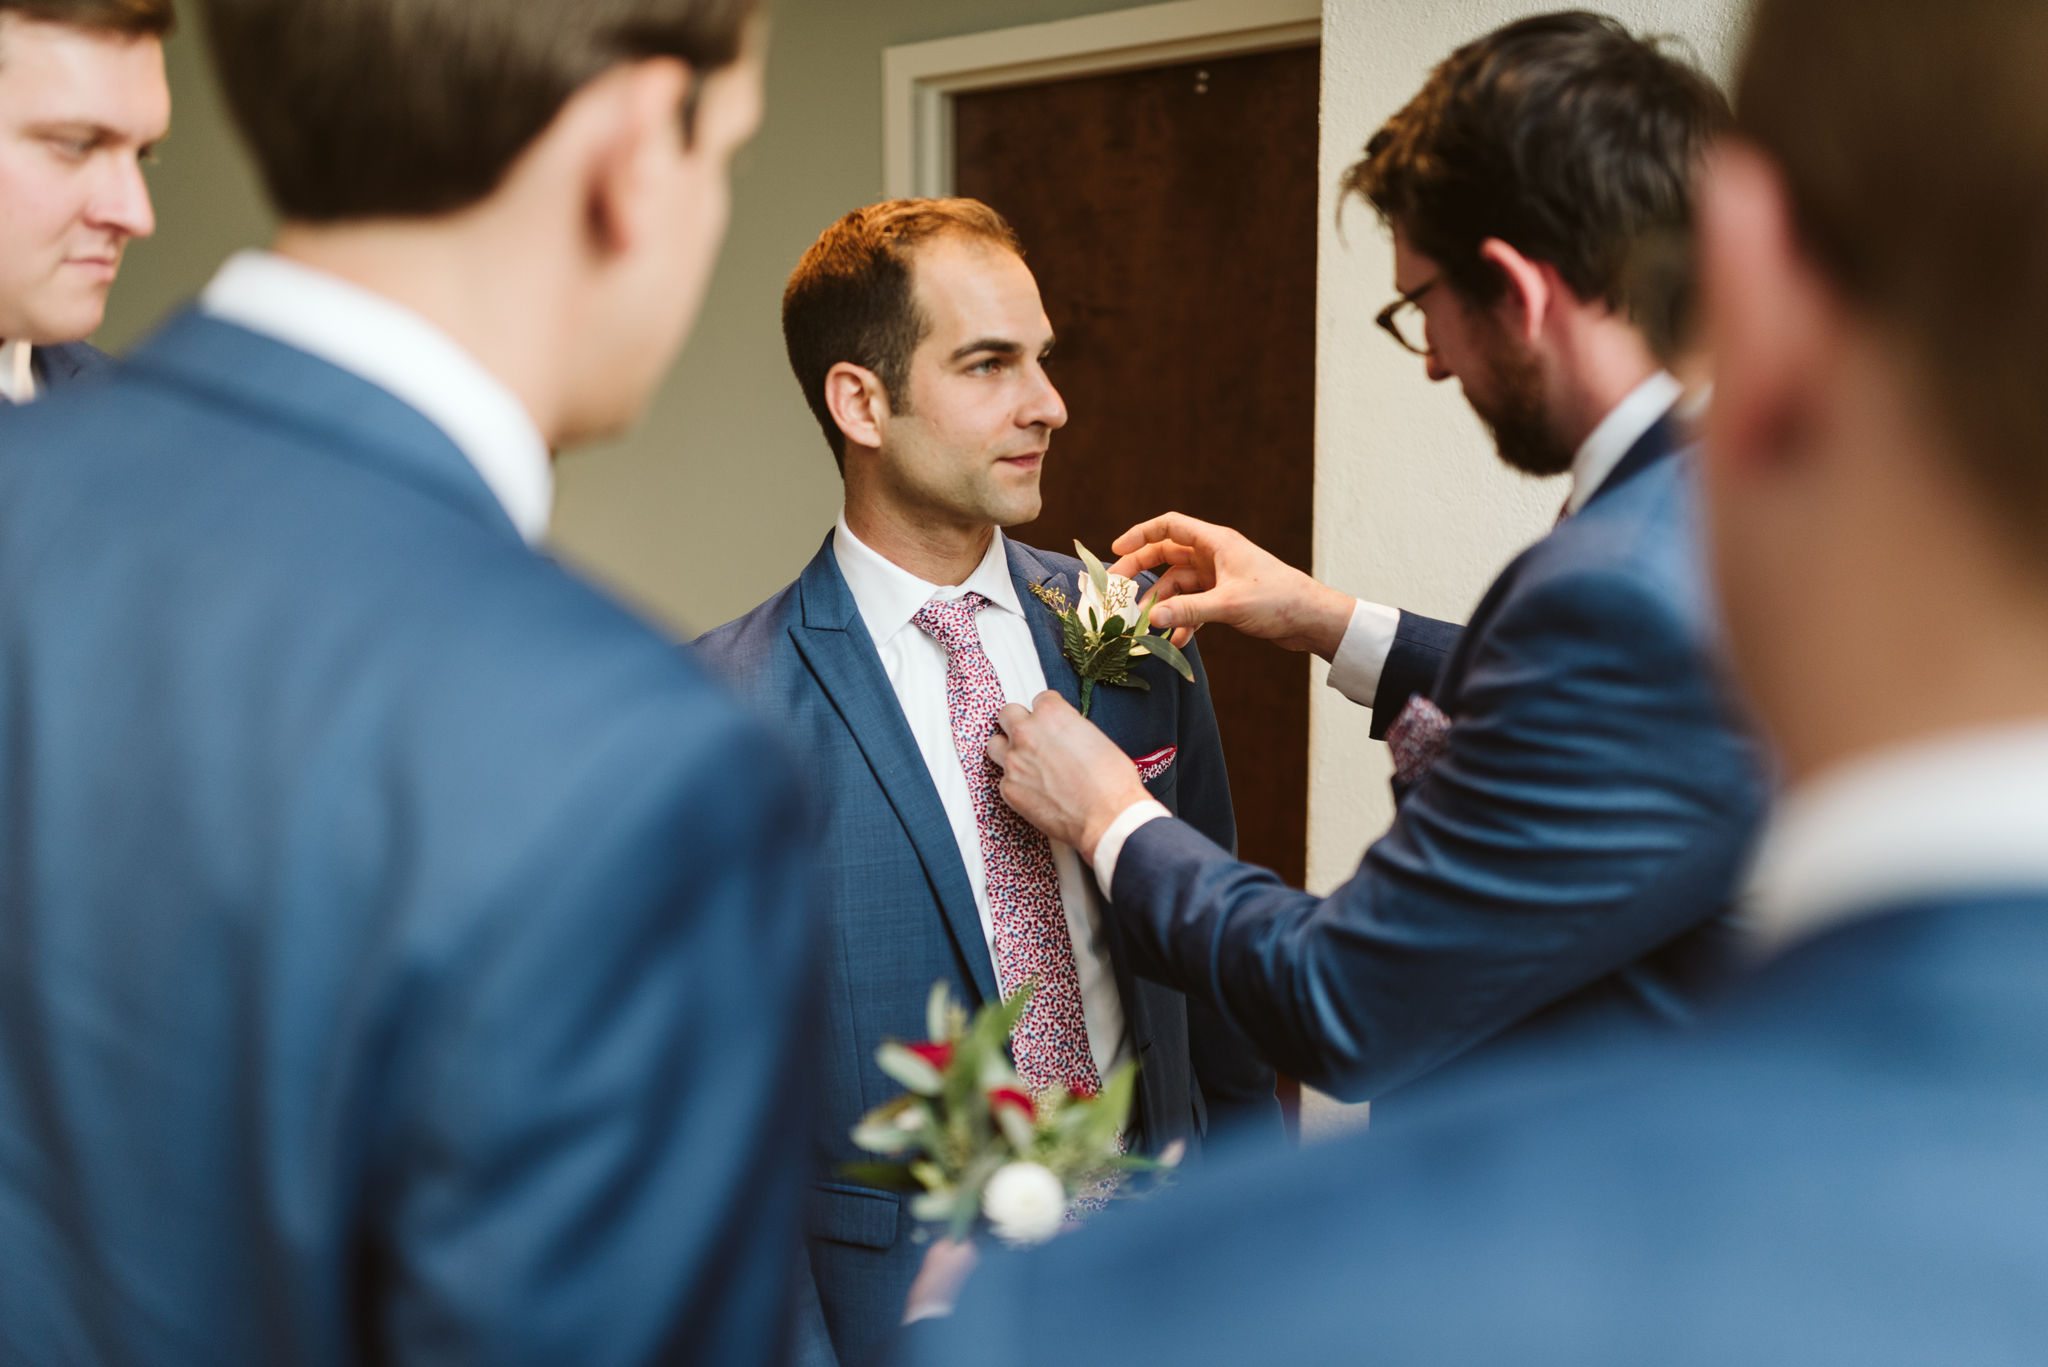 Phoenix Maryland, Baltimore Wedding Photographer, Eagle's Nest Country Club, Classic, Romantic, Spring, Generation Tux, Knotty Tie, Groom and Groomsmen Getting Ready